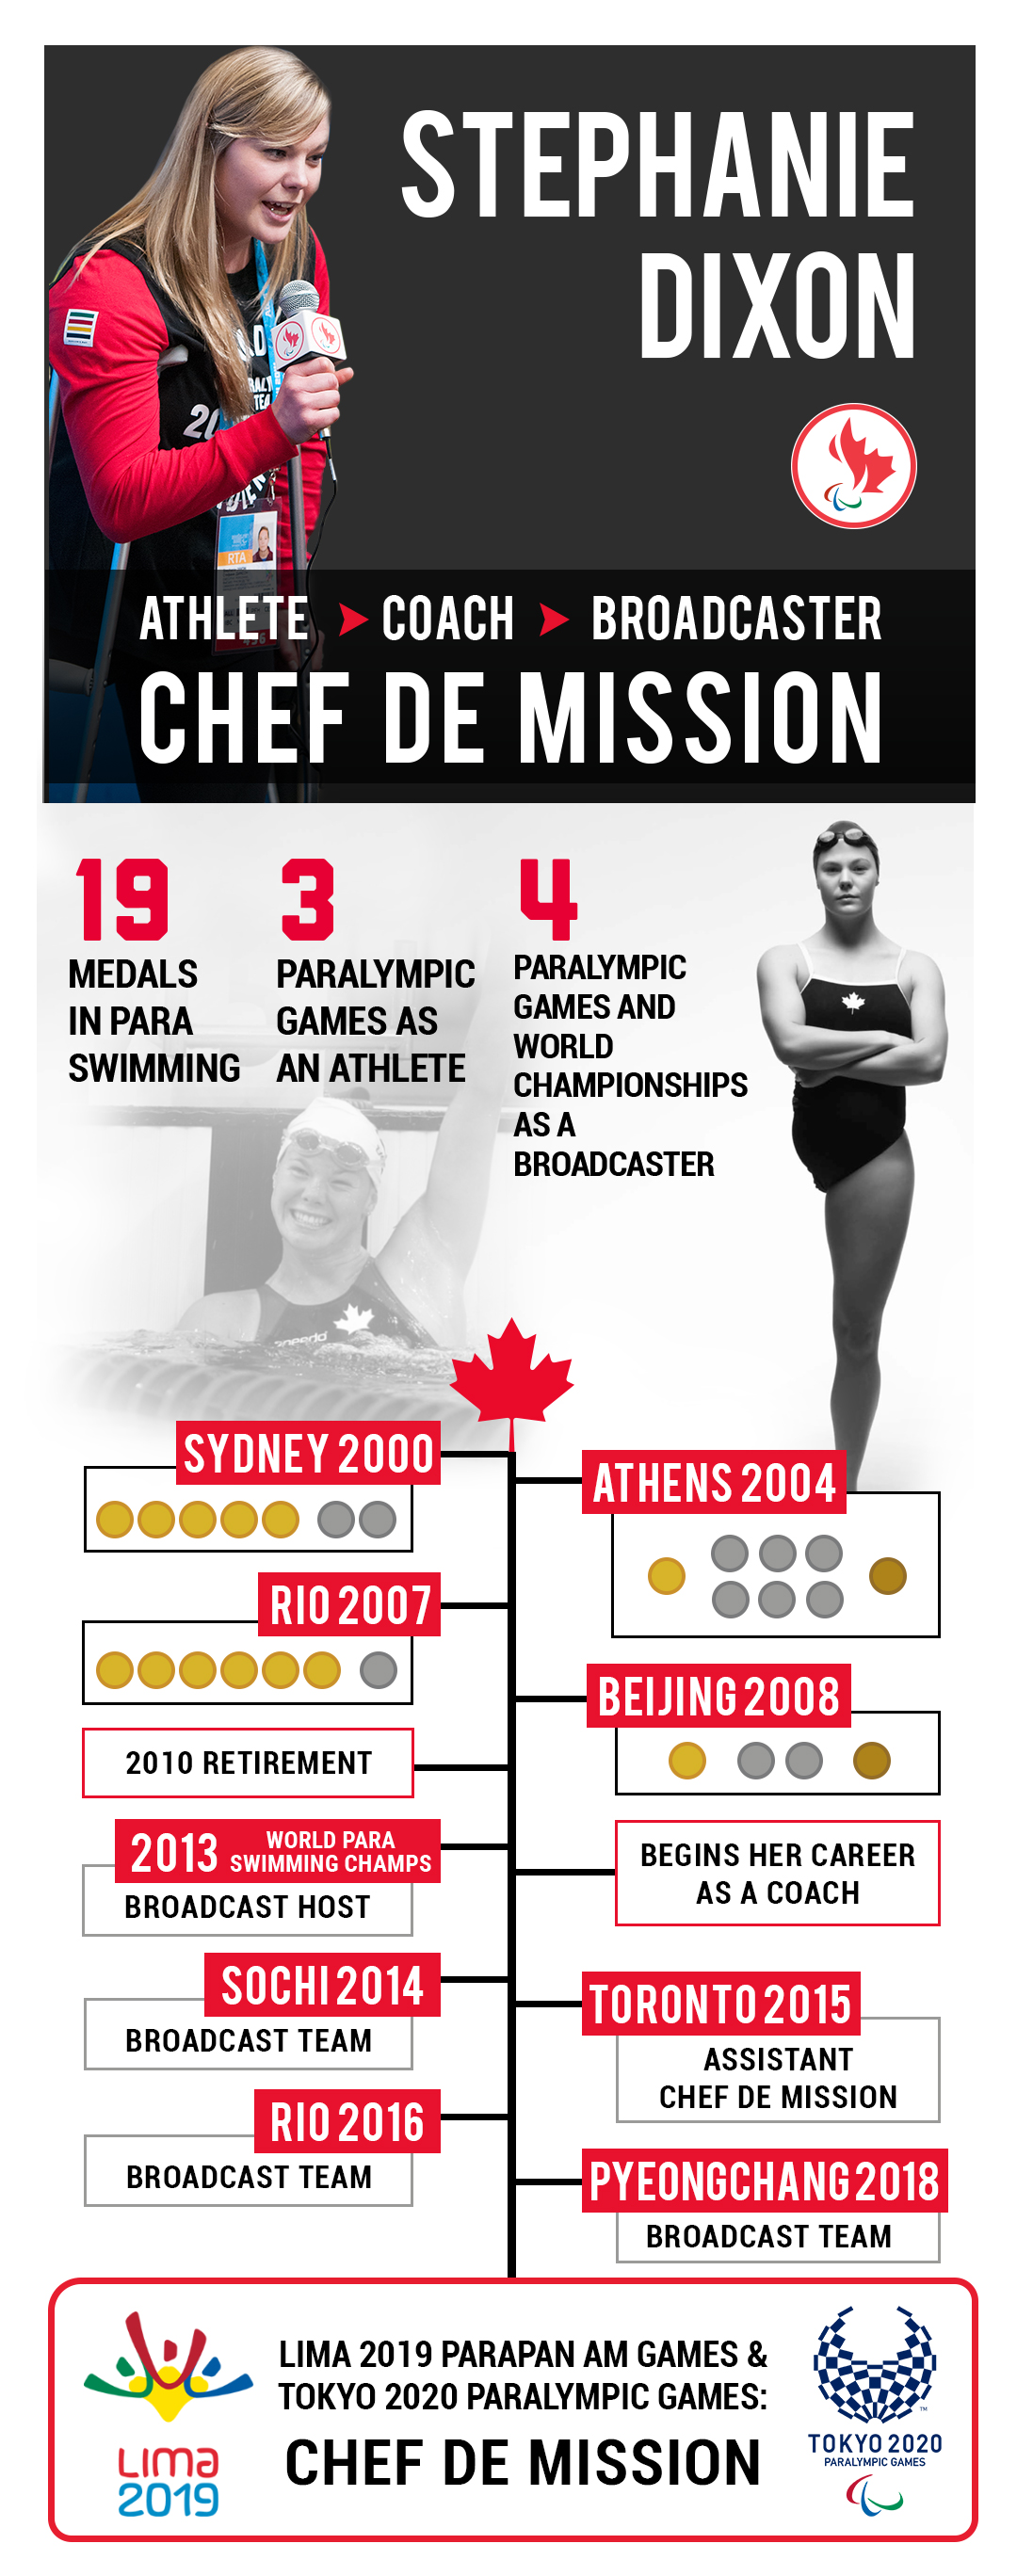 Stephanie Dixon infographic showing her Para sport involvement over the years